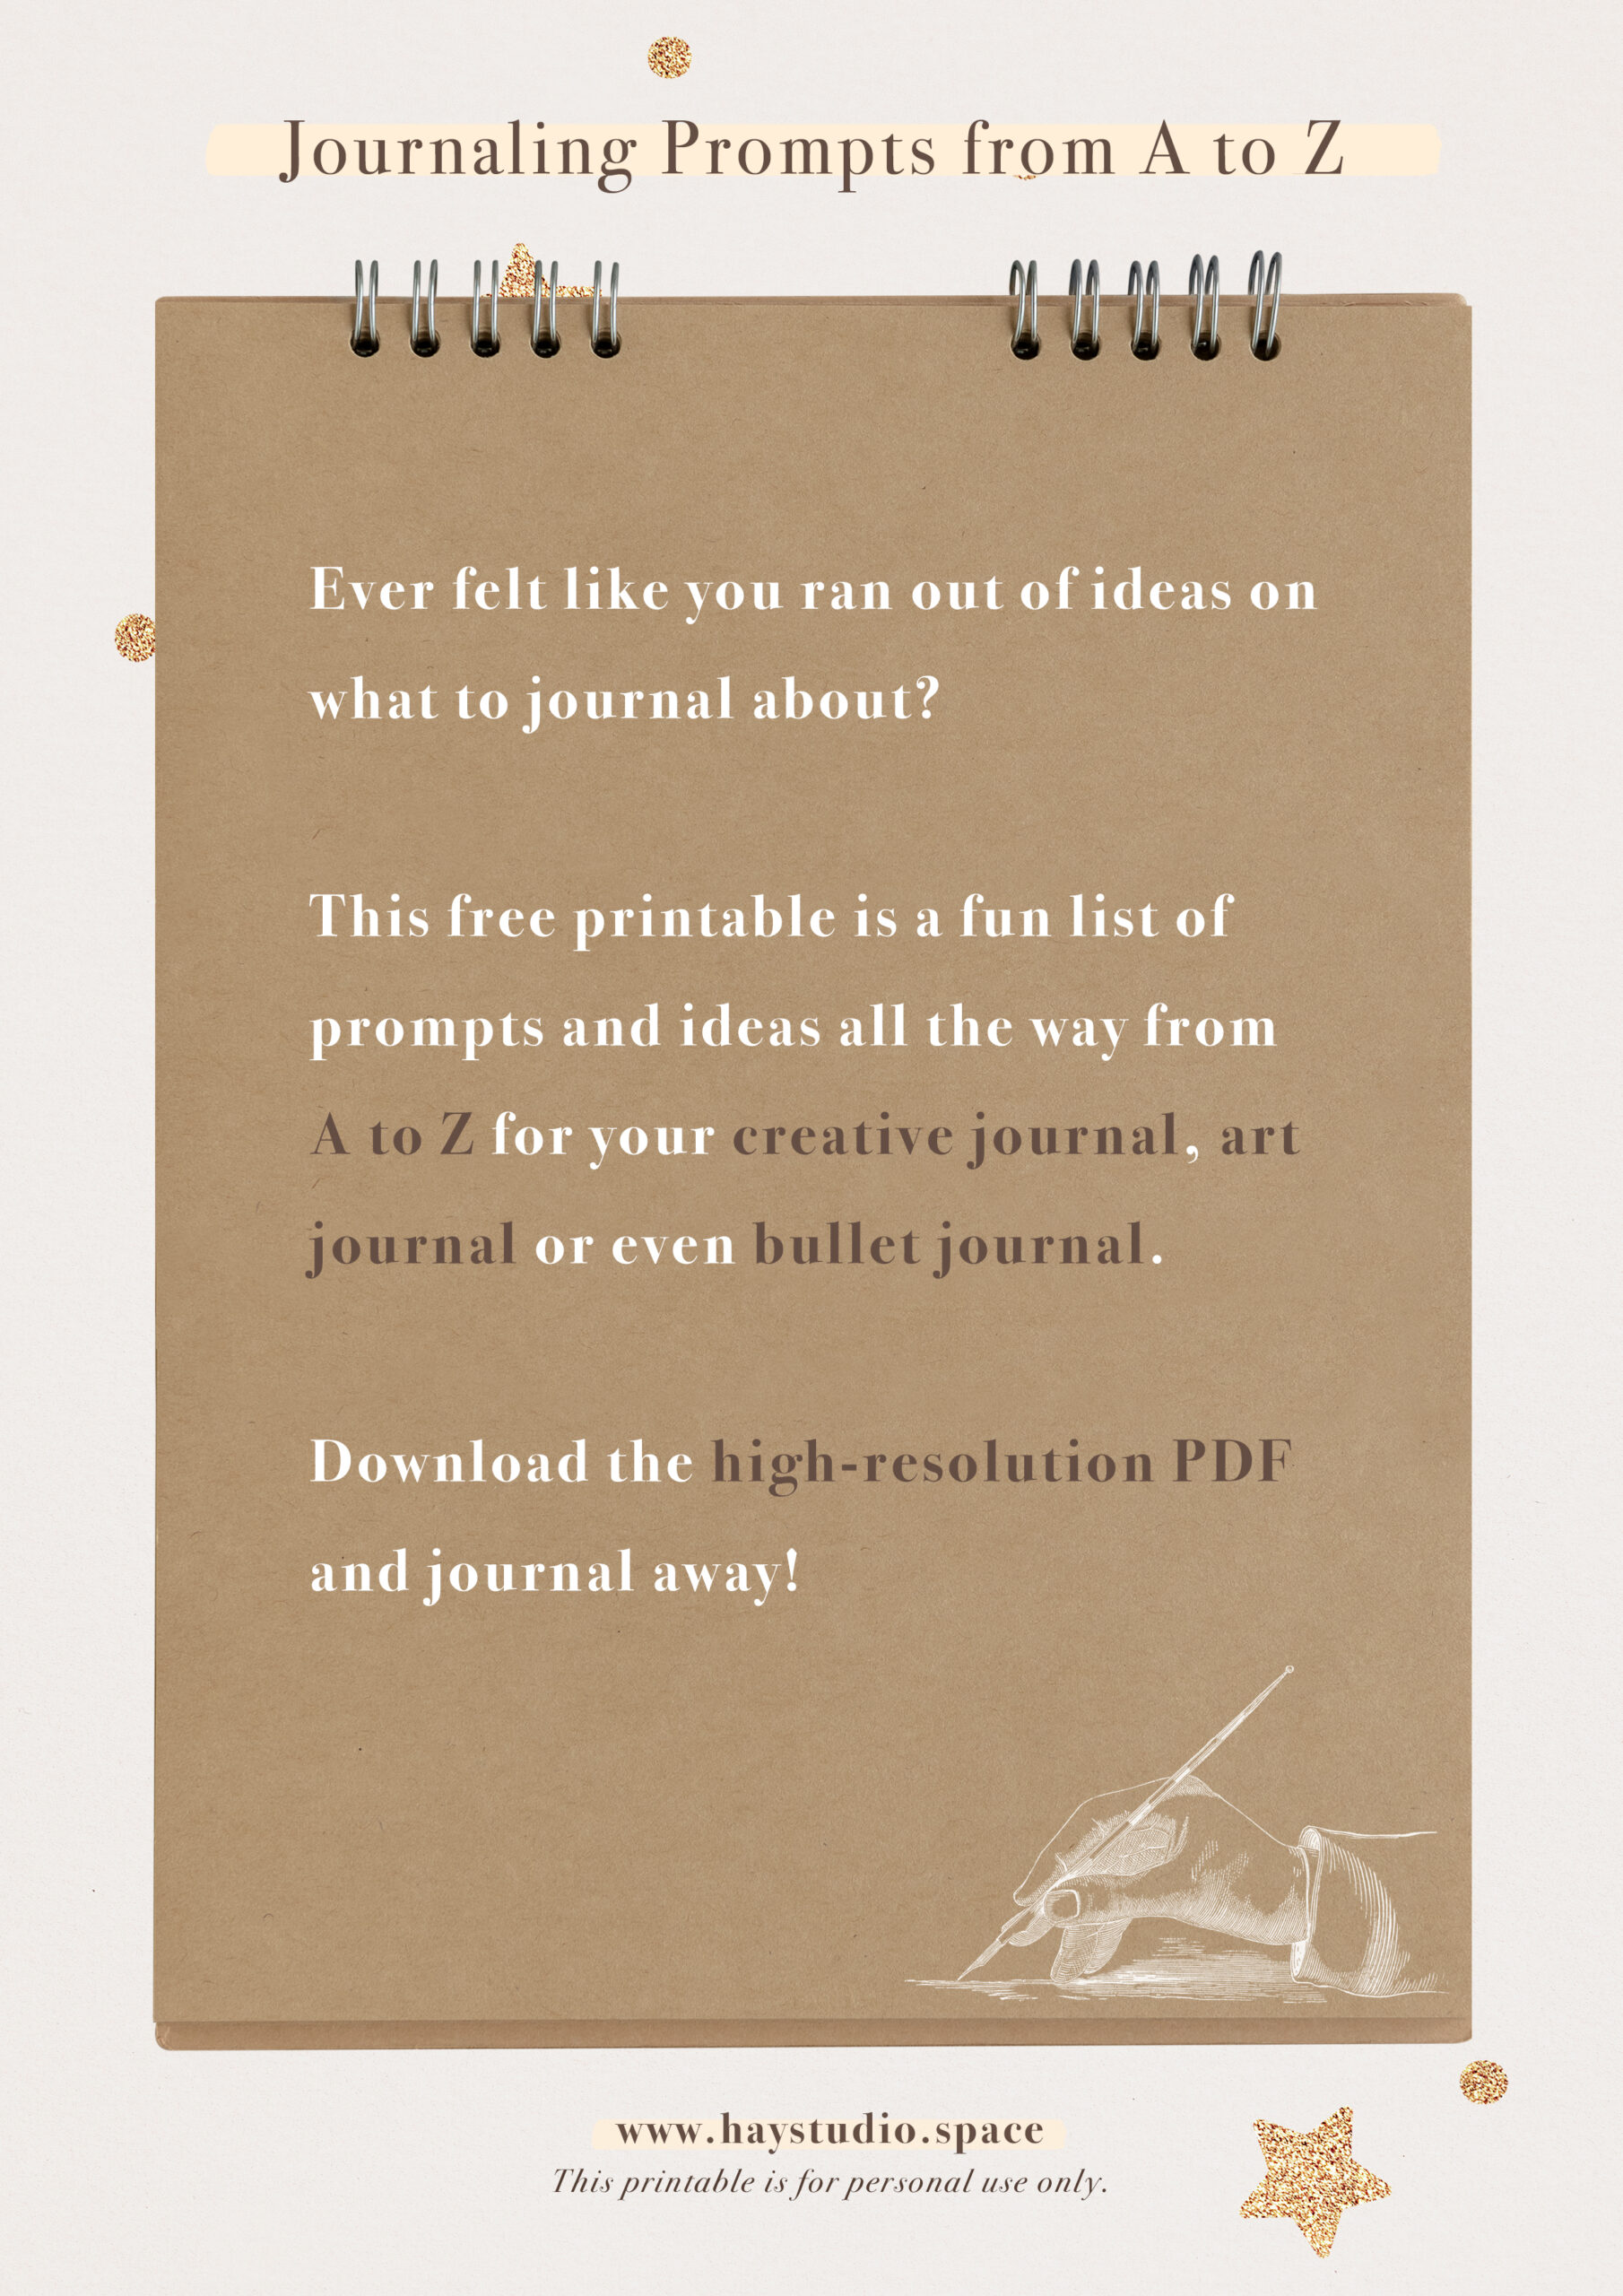 Free Printable Journaling Prompts and Ideas from A to Z List